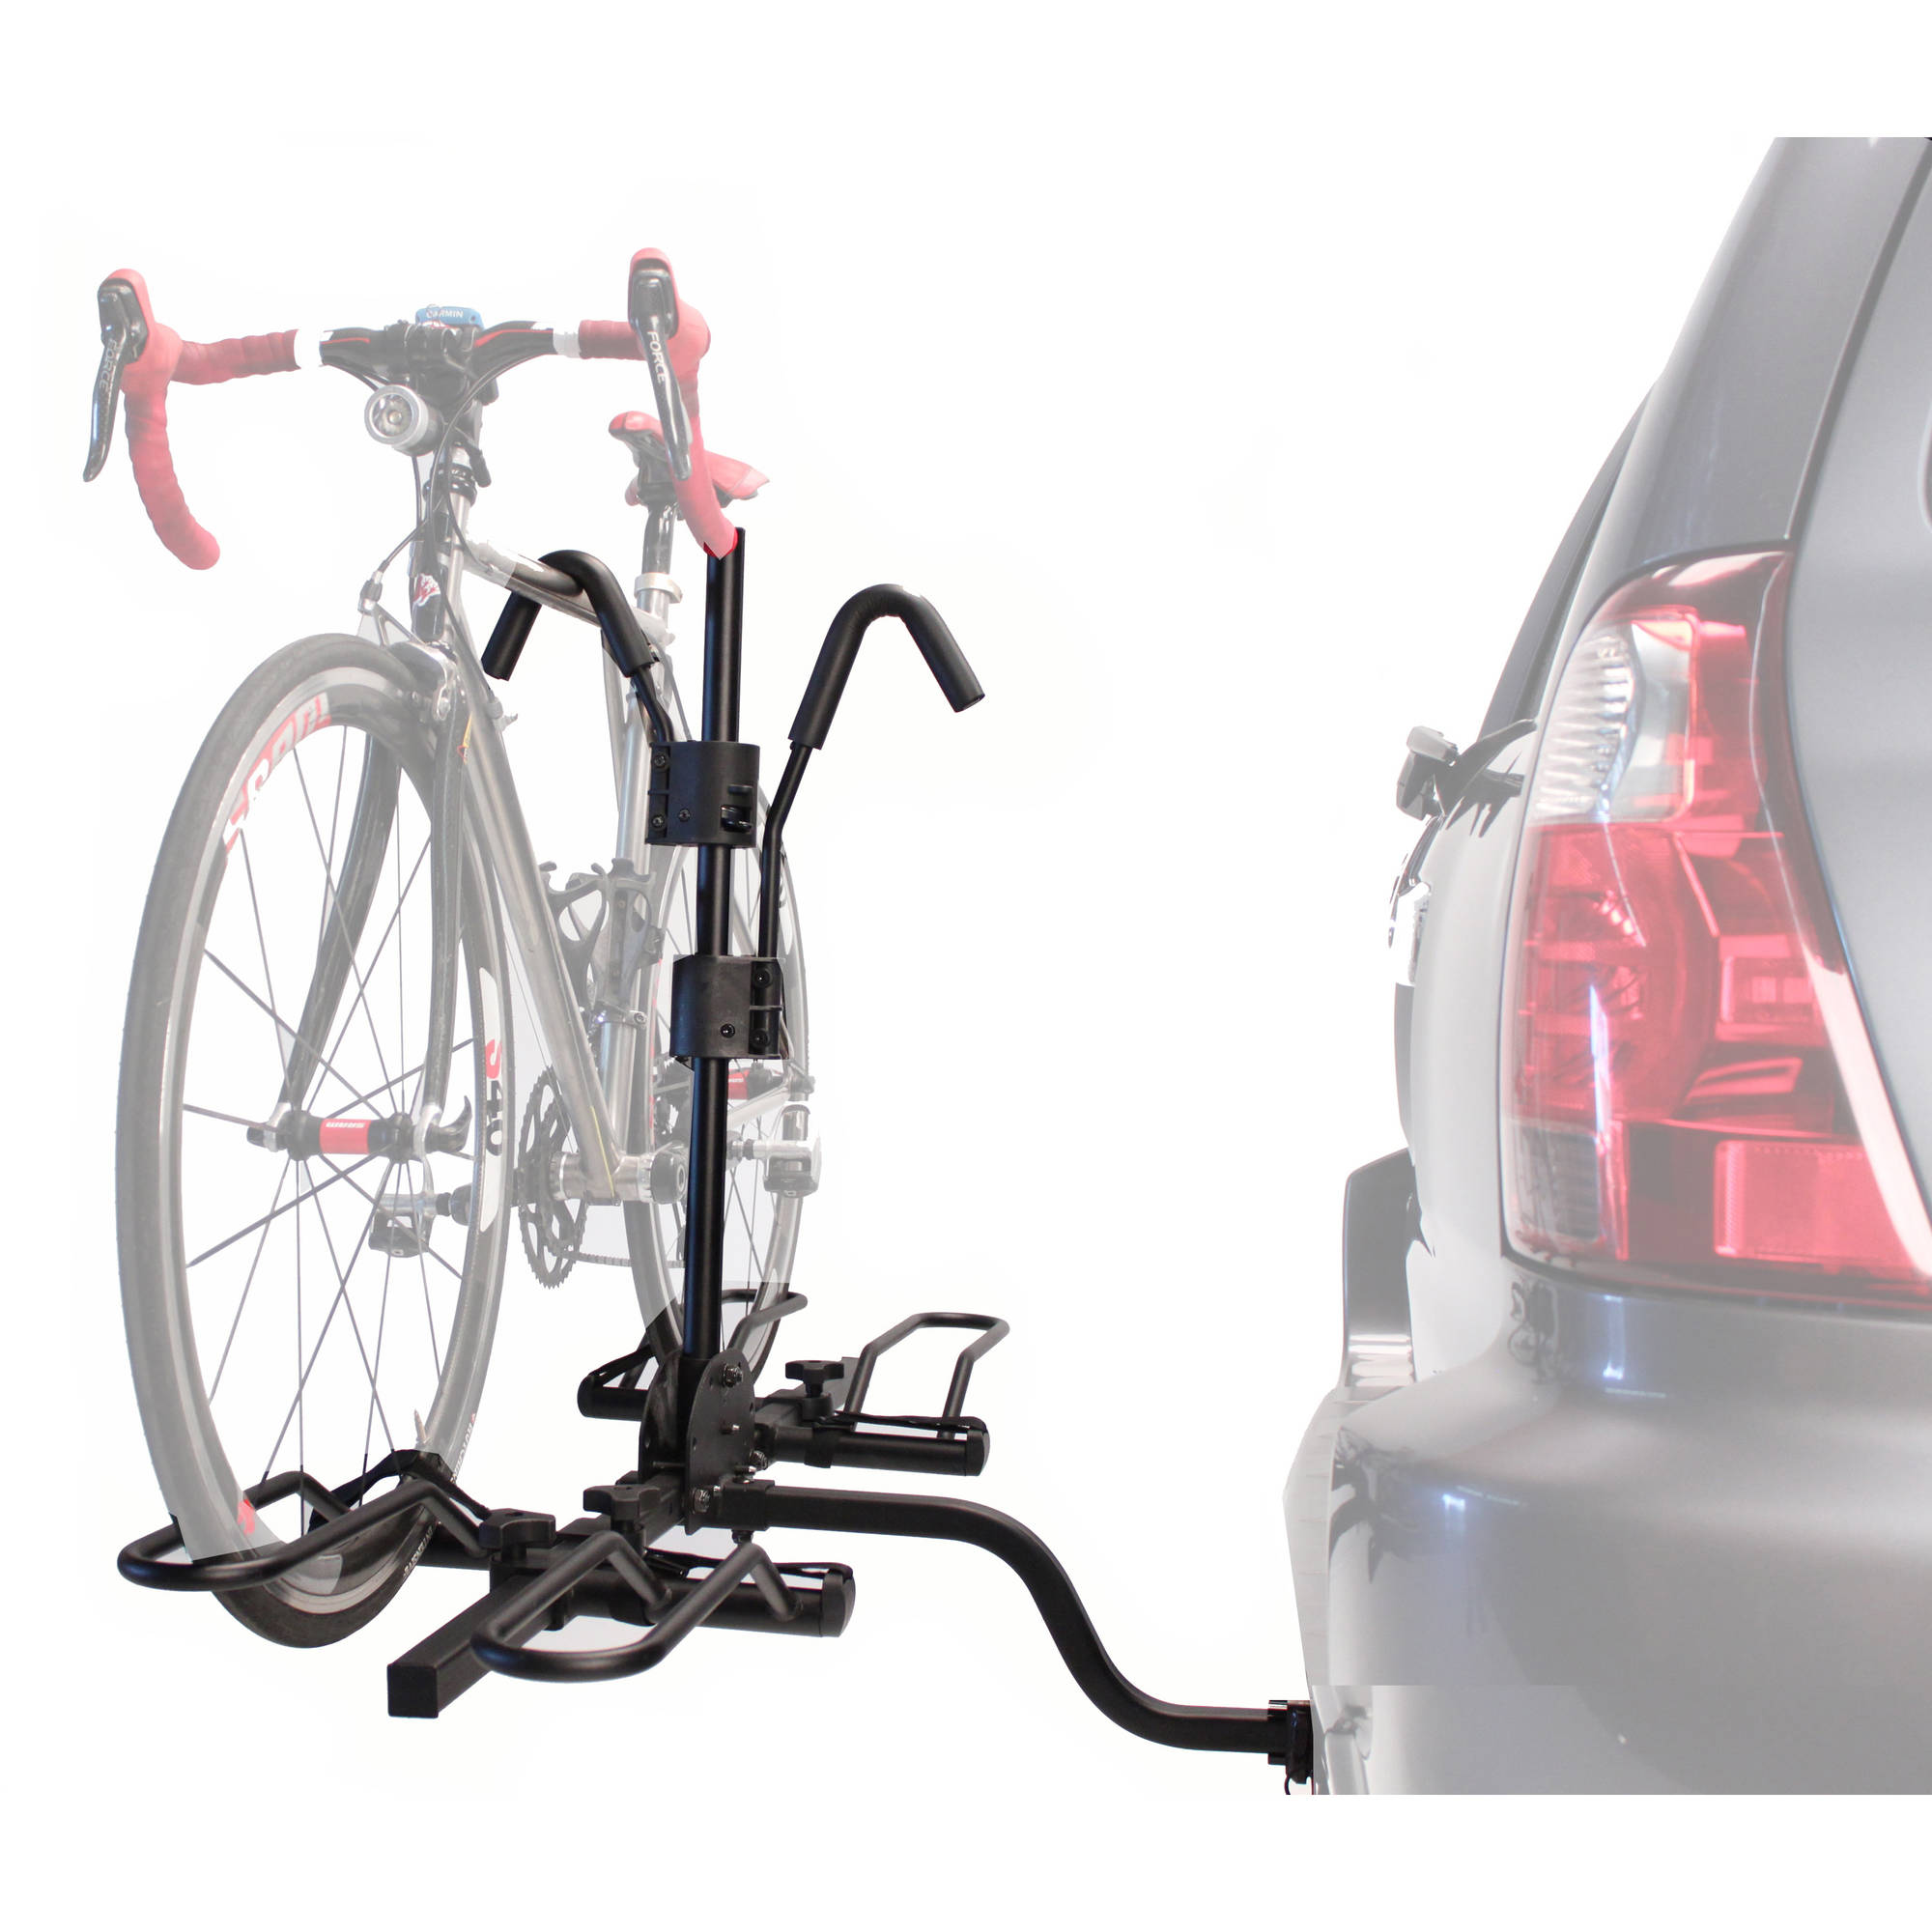 racks free product toys sports trs today hollywood bicycle rack bike shipping overstock se hitch